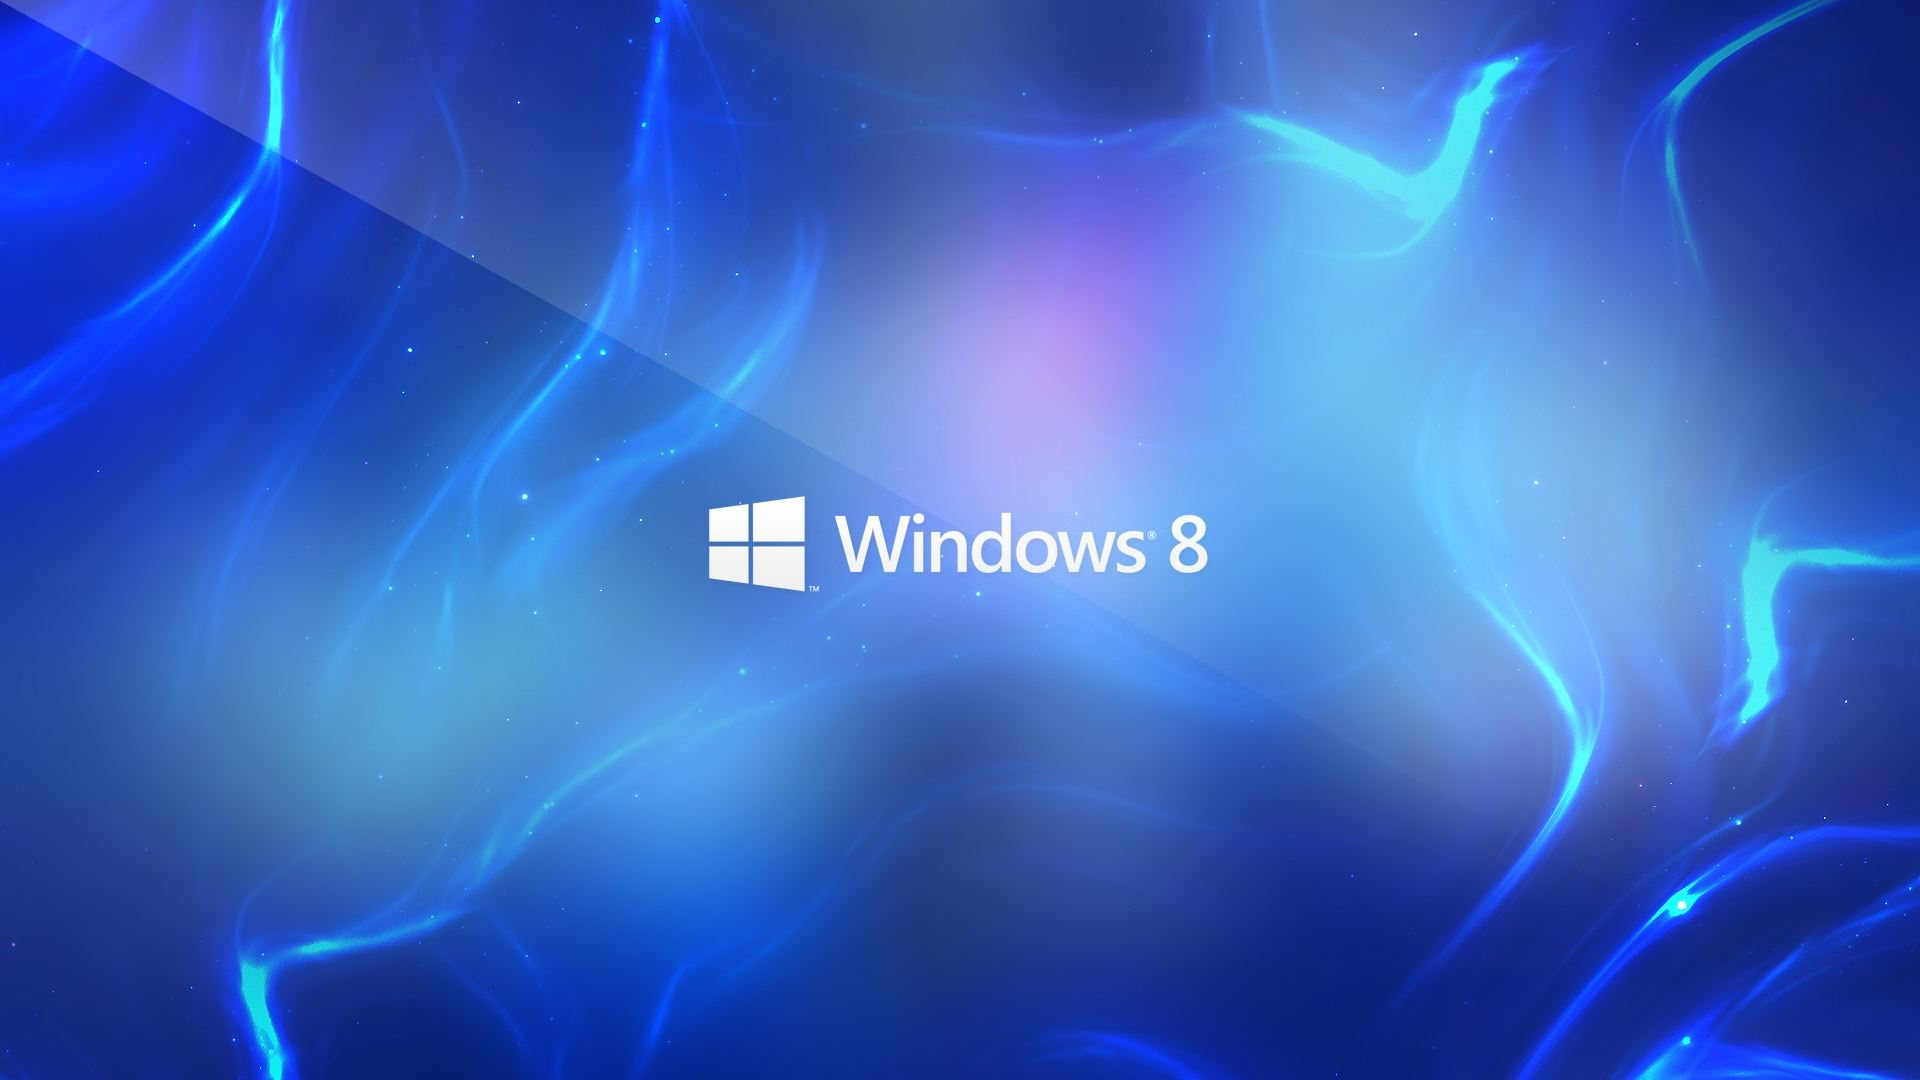 55 Windows 8 Wallpapers in HD For Download 1920x1080